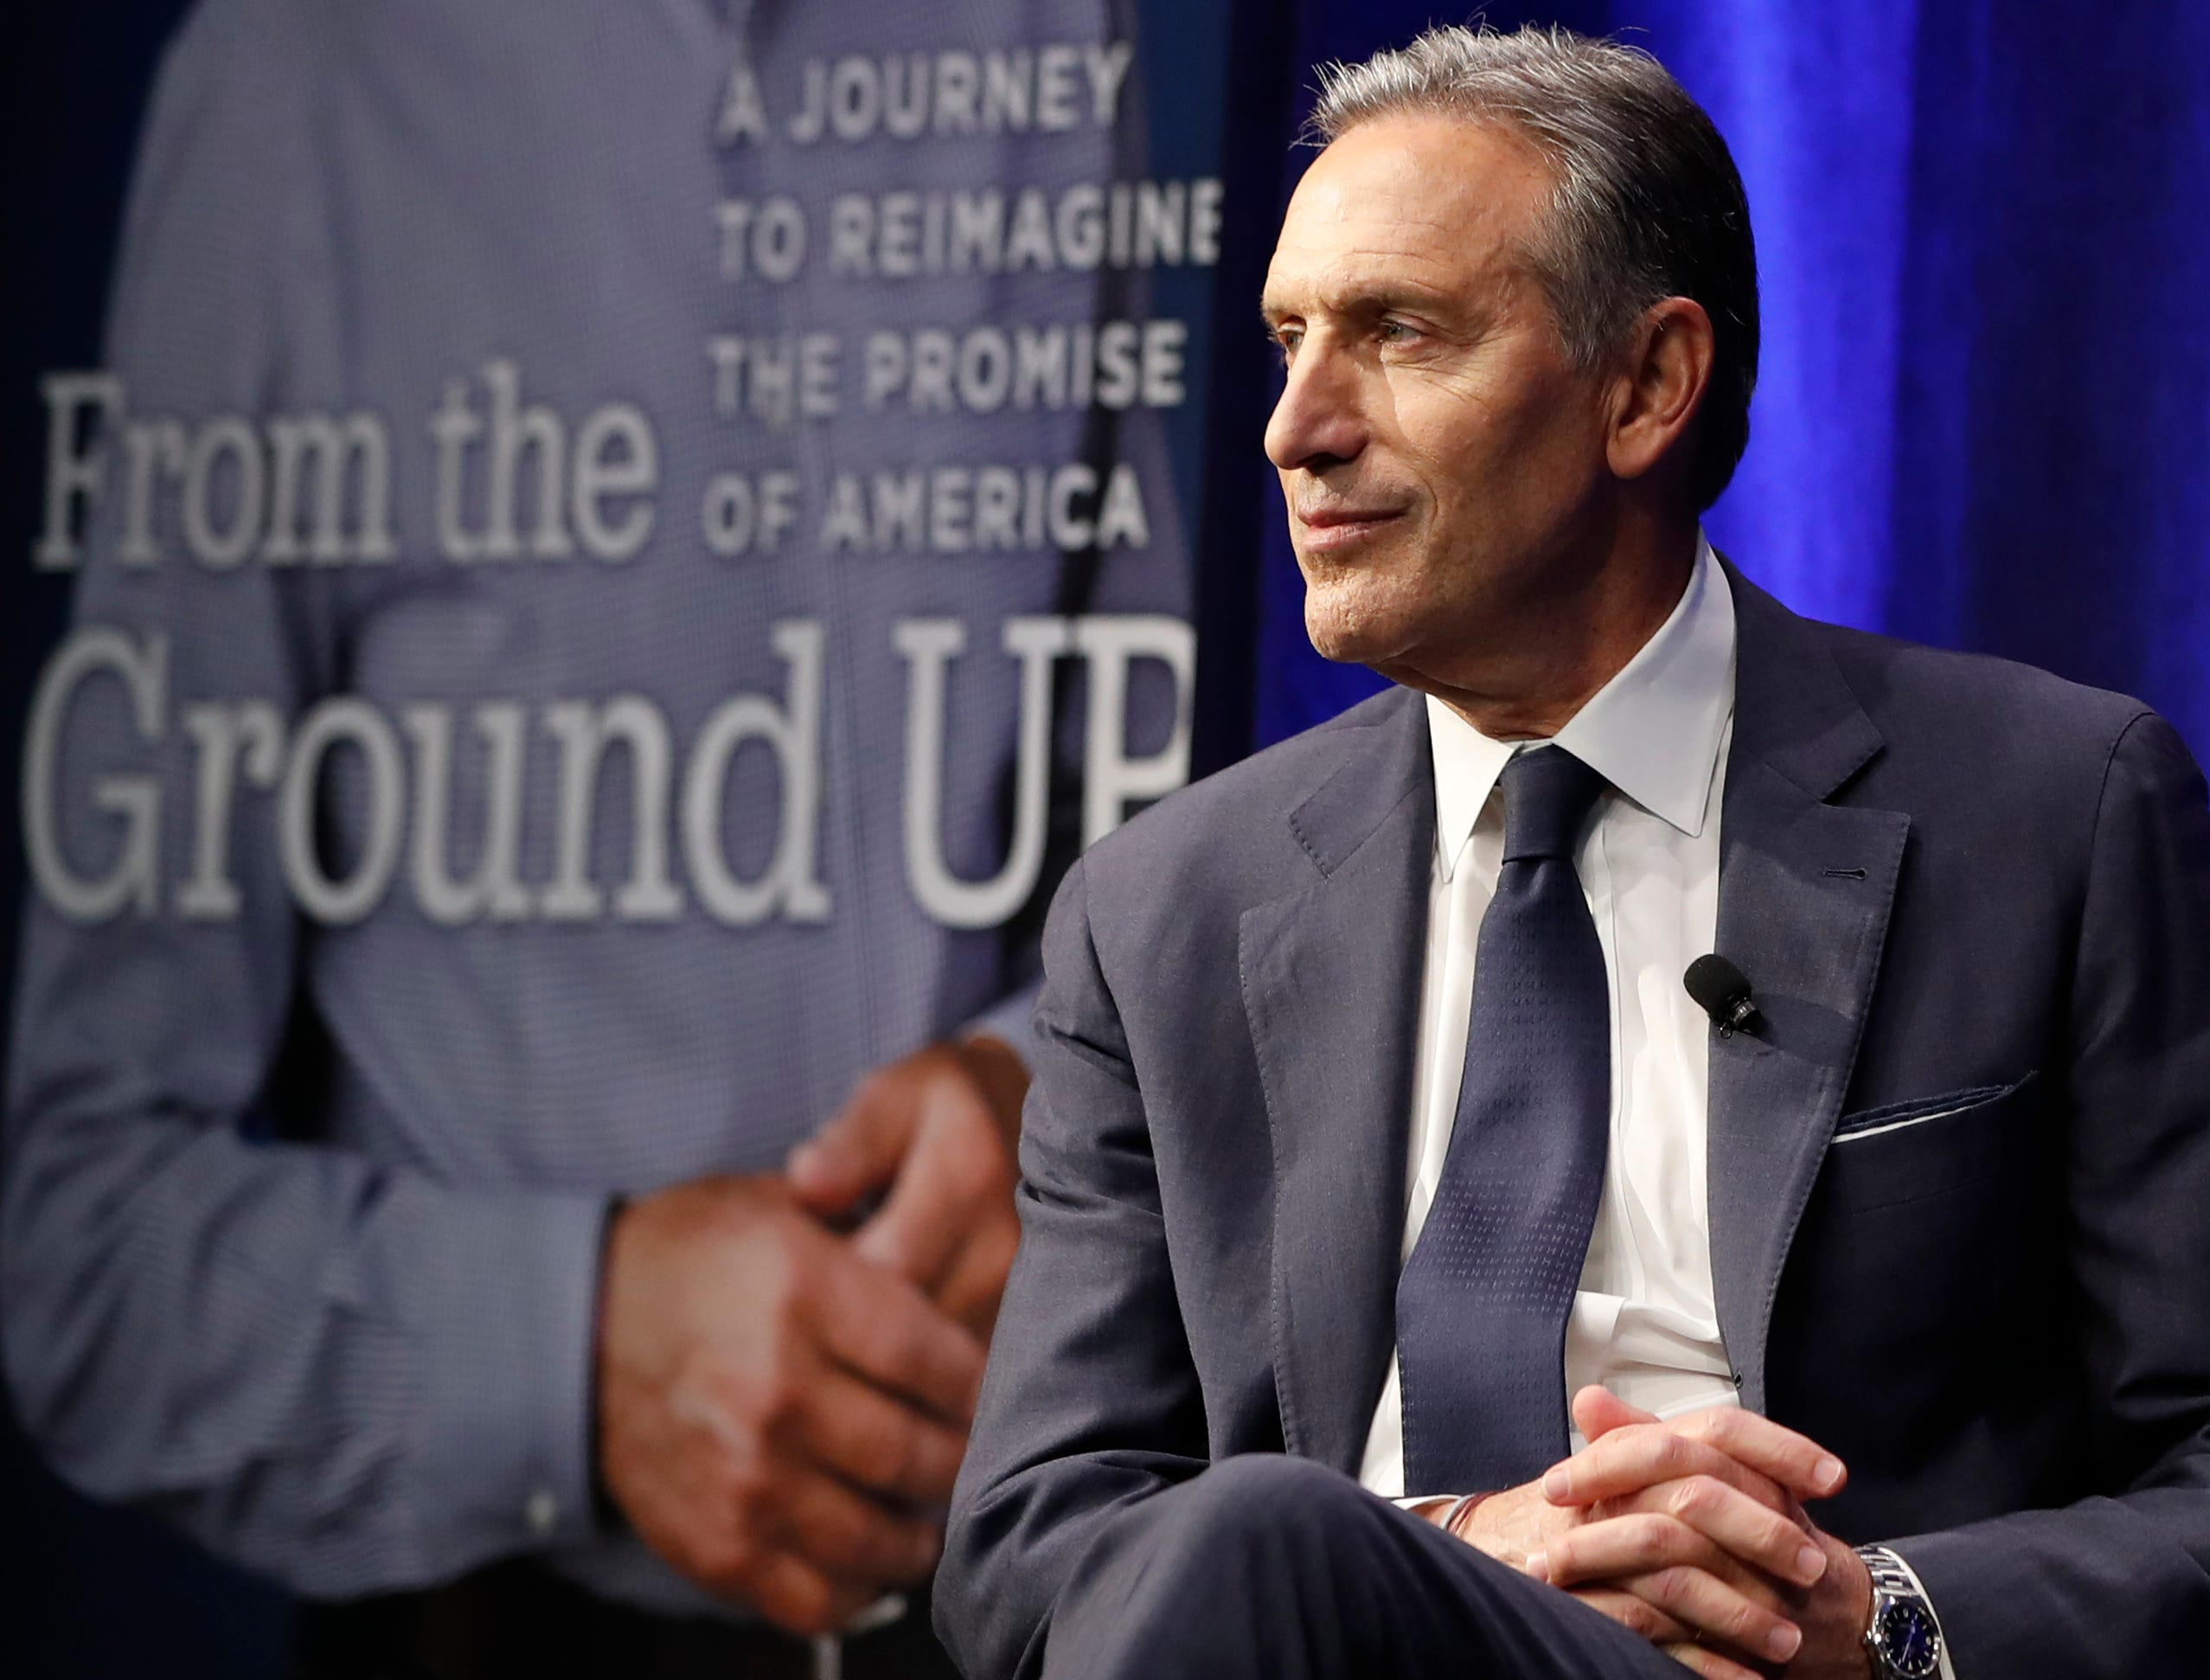 Former Starbucks CEO and Chairman Howard Schultz looks out at the audience during the kickoff event of his book promotion tour, Jan. 28, 2019, in New York.